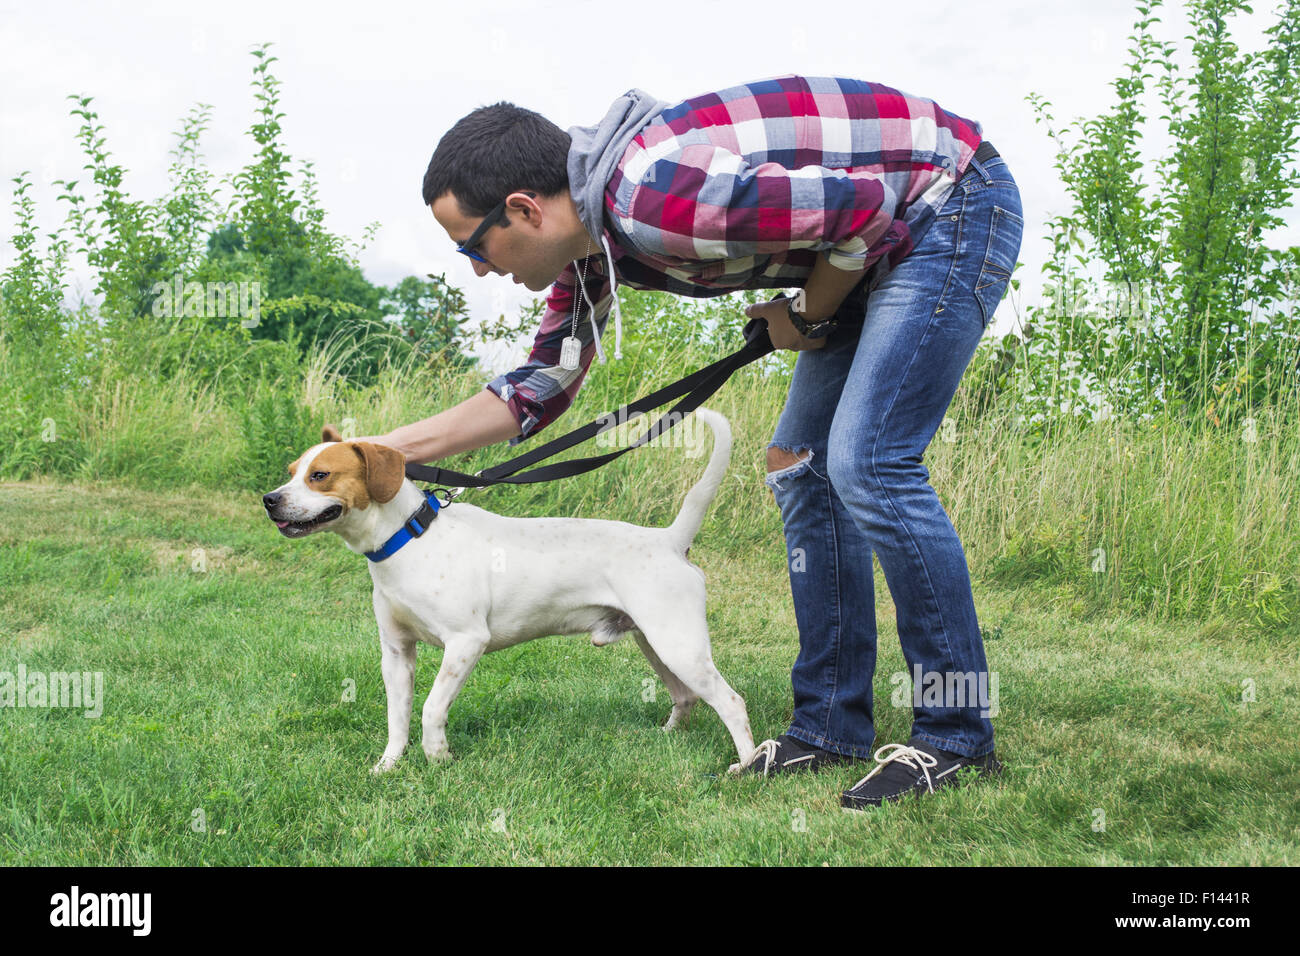 A young man trains a medium sized dog. - Stock Image